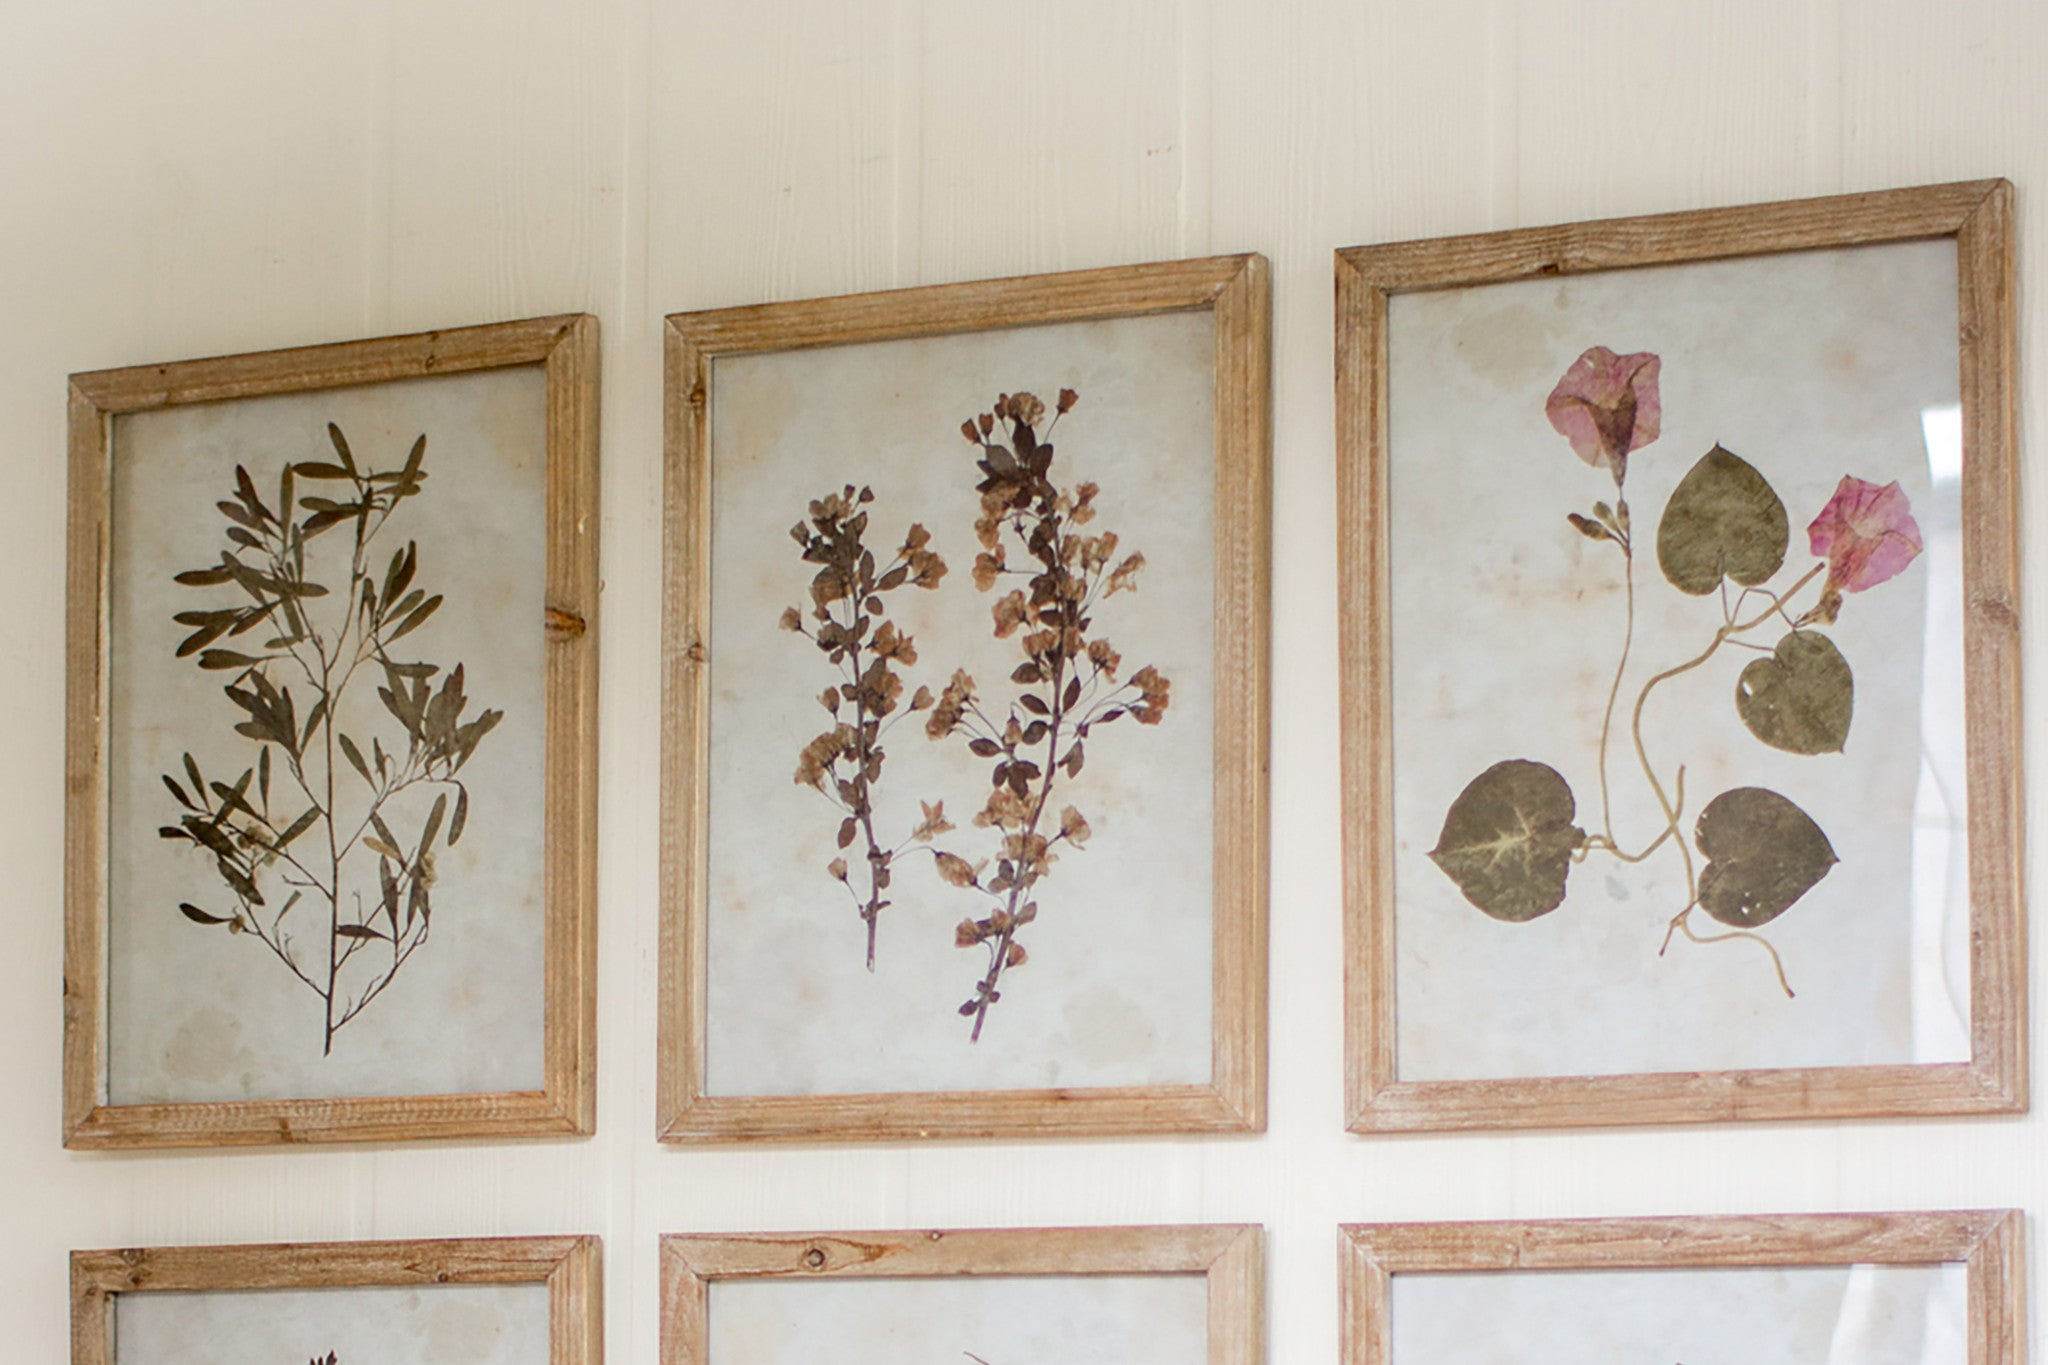 Set of Six Leaf Prints With Rustic Wood Frames - Woodwaves